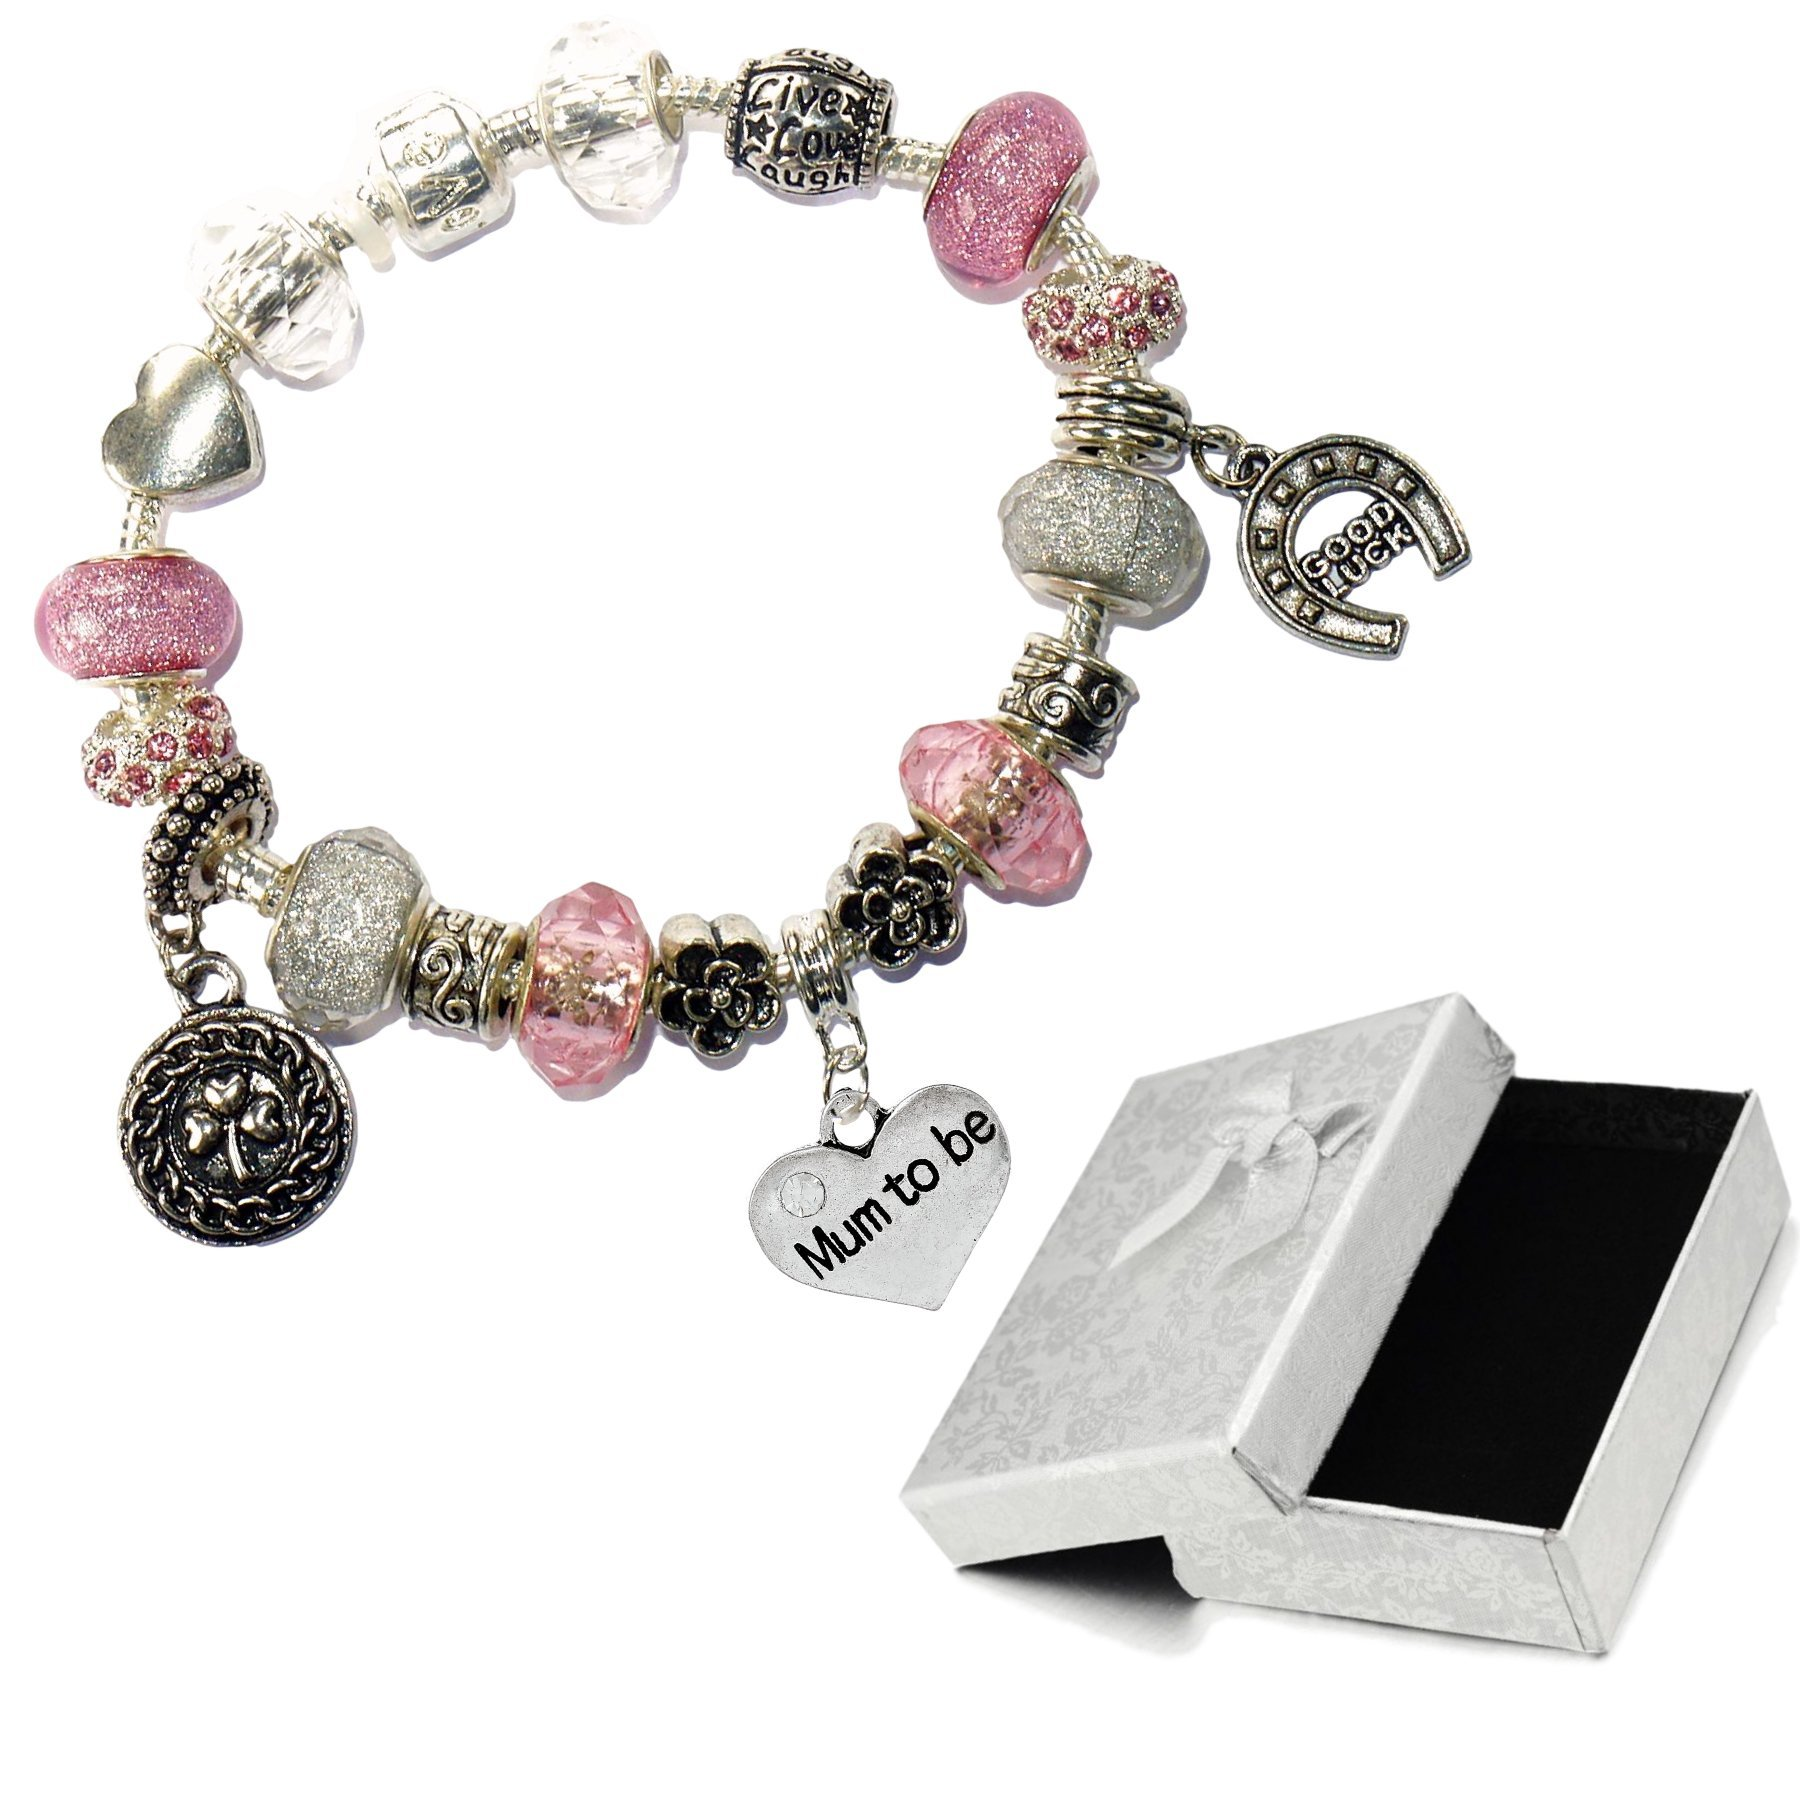 Charm Buddy Mum To Be Pink Silver Crystal Good Luck Pandora Style Bracelet With Charms Gift Box